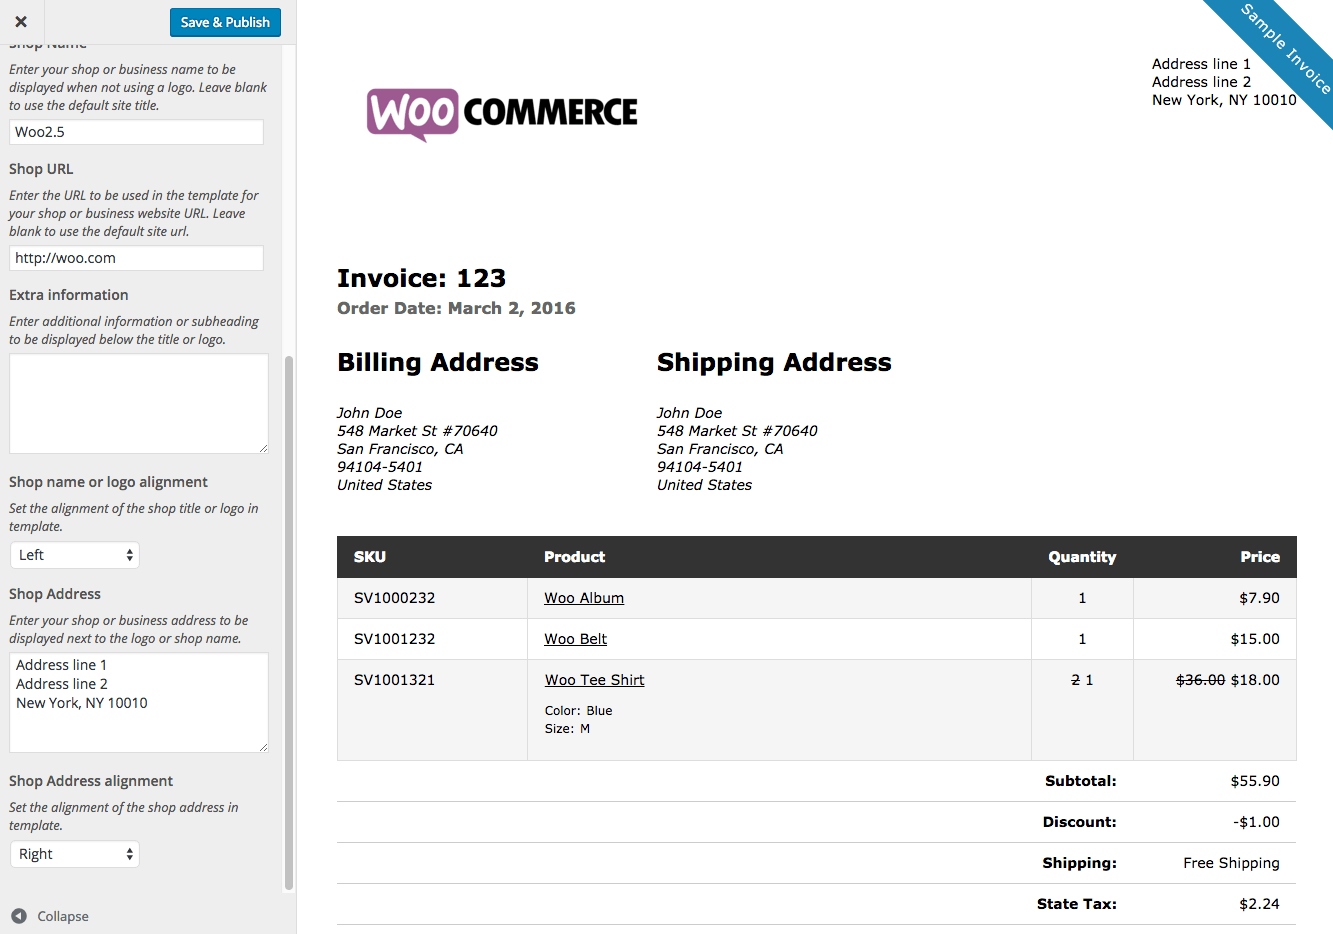 Hucareus  Splendid Woocommerce Print Invoices Amp Packing Lists  Woocommerce Docs With Exquisite Woocommerce Print Invoices  Packing Lists Customizer With Beautiful Rent Receipt Uk Also Free Rent Receipts Templates In Addition Temporary Receipt Template And Receipts Format As Well As Receipt Form Template Word Additionally Word Receipt Templates From Docswoocommercecom With Hucareus  Exquisite Woocommerce Print Invoices Amp Packing Lists  Woocommerce Docs With Beautiful Woocommerce Print Invoices  Packing Lists Customizer And Splendid Rent Receipt Uk Also Free Rent Receipts Templates In Addition Temporary Receipt Template From Docswoocommercecom